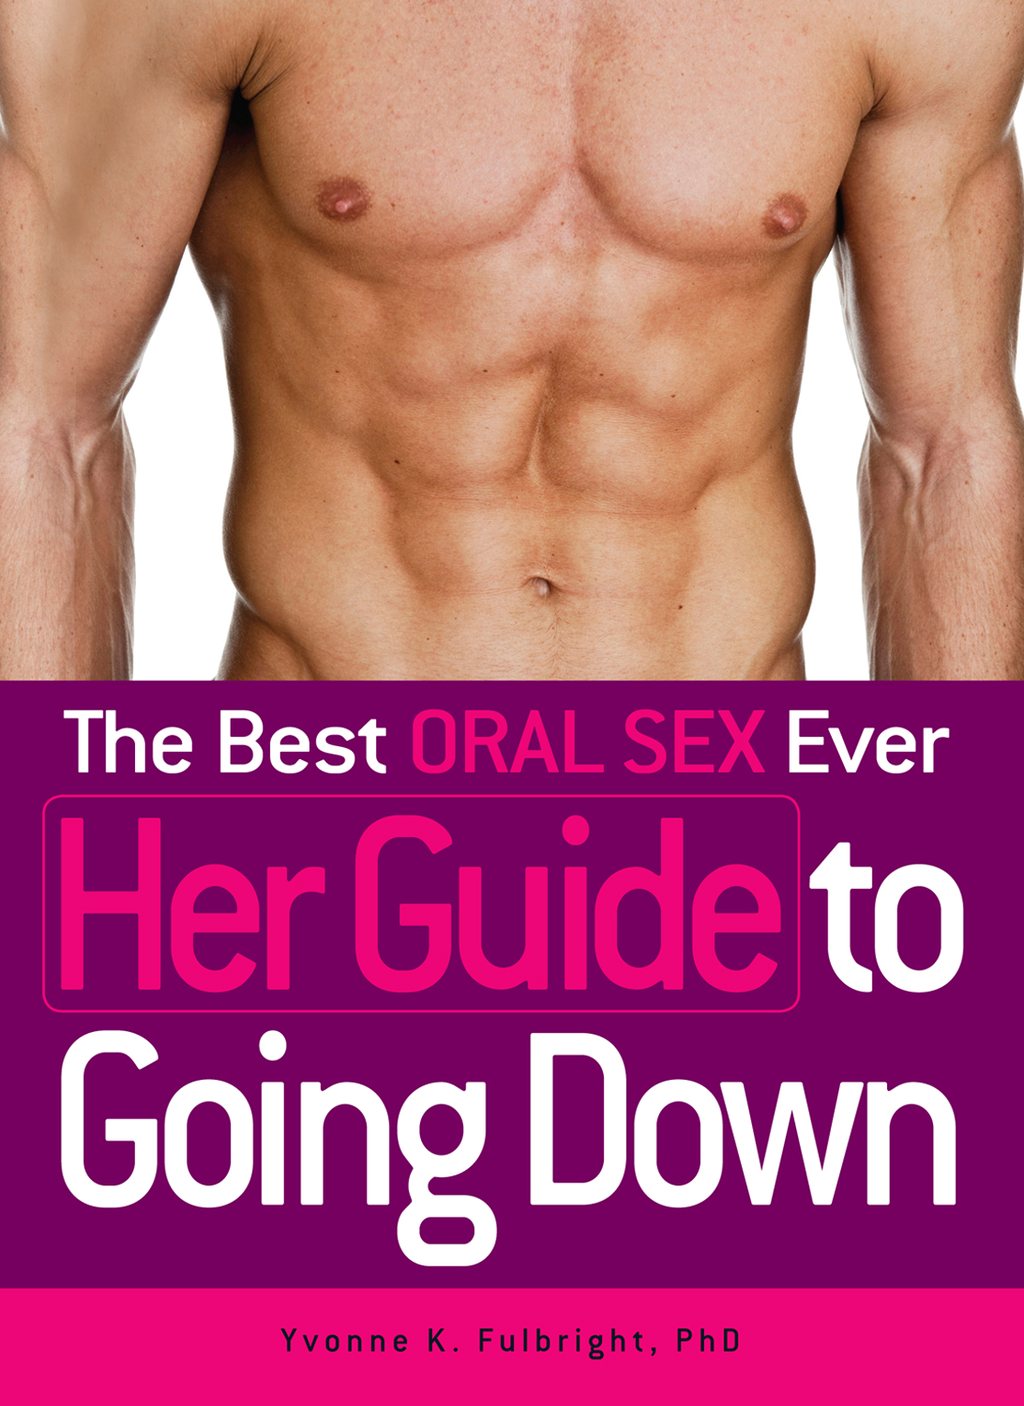 The Best Oral Sex Ever - Her Guide to Going Down By: Yvonne K. Fulbright